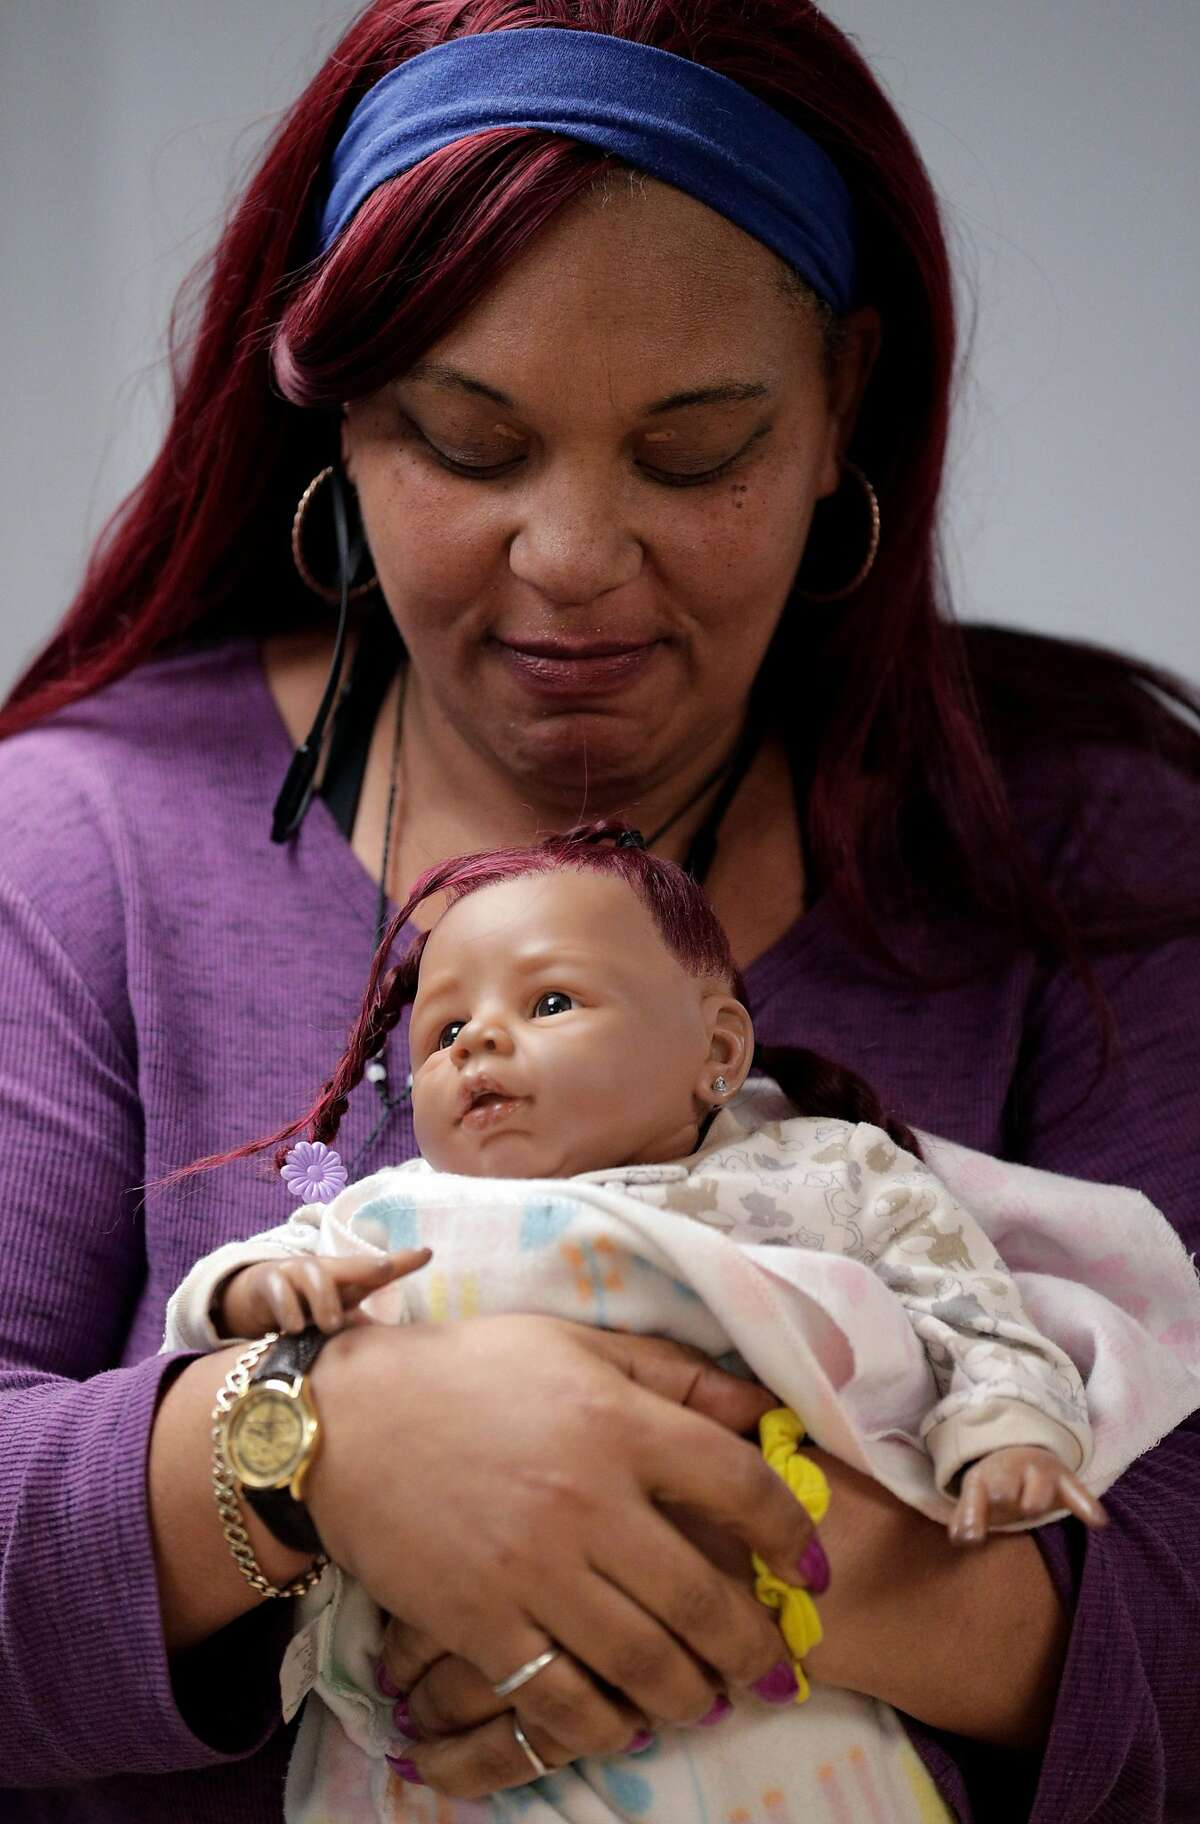 Citrina Hankins holds a baby doll at the Henry Robinson Center where she is currently a resident in Oakland, Calif., on Tuesday, January 14, 2020. Hankins will be moving out soon into more permanenet housing.